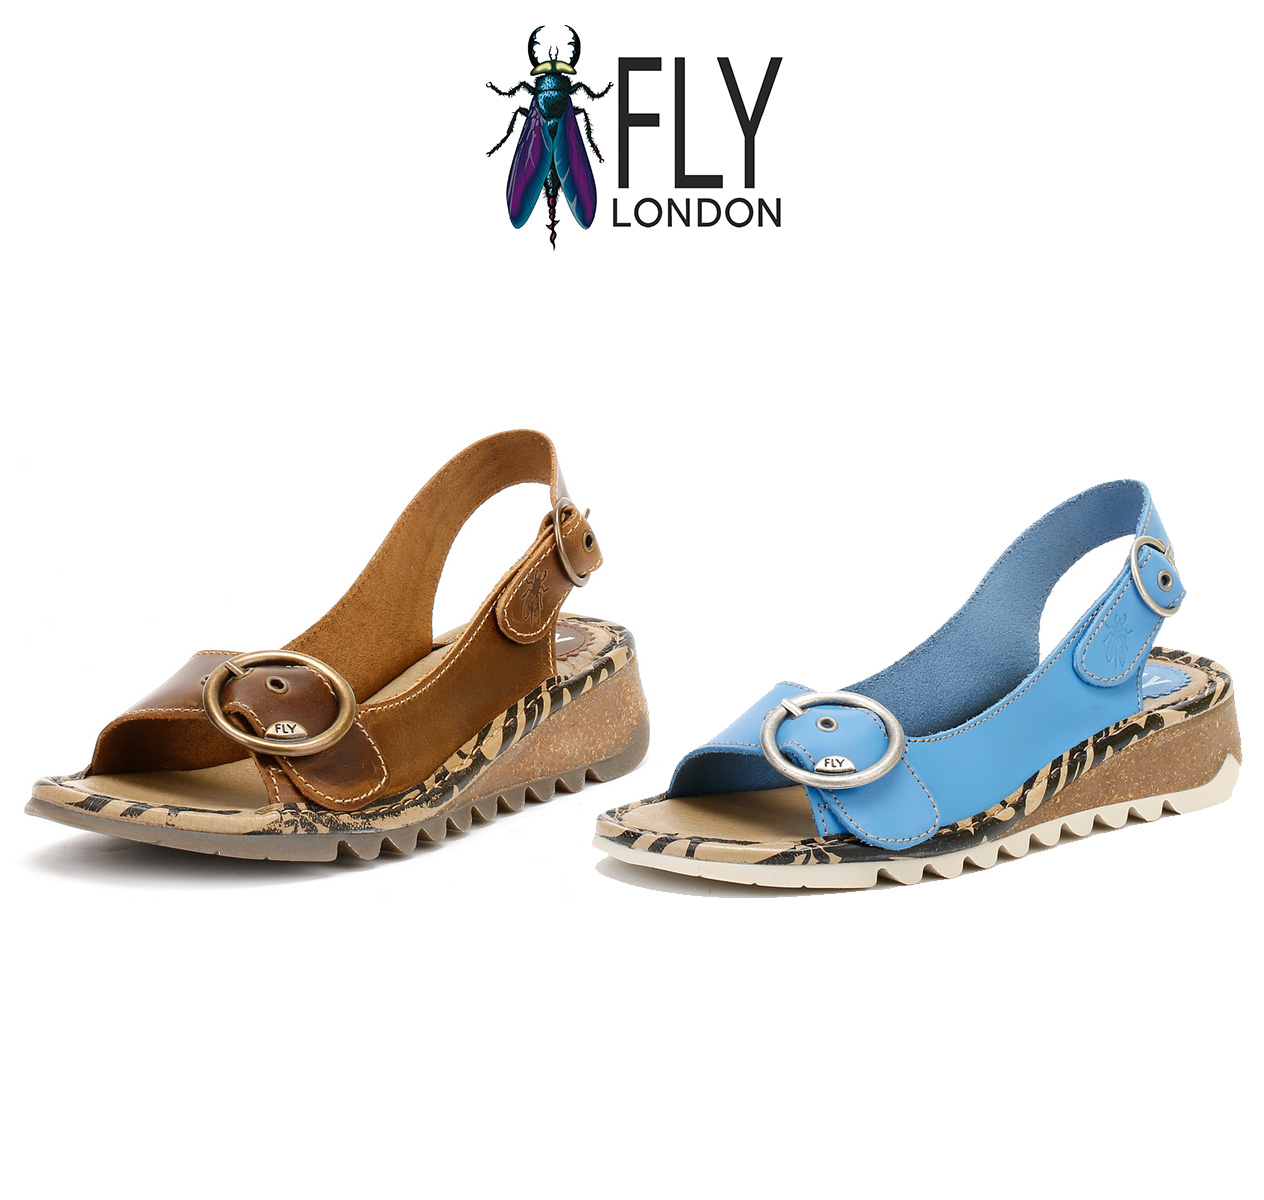 cc1ee9f3d82e Details about Fly London Womens Slingback Sandals